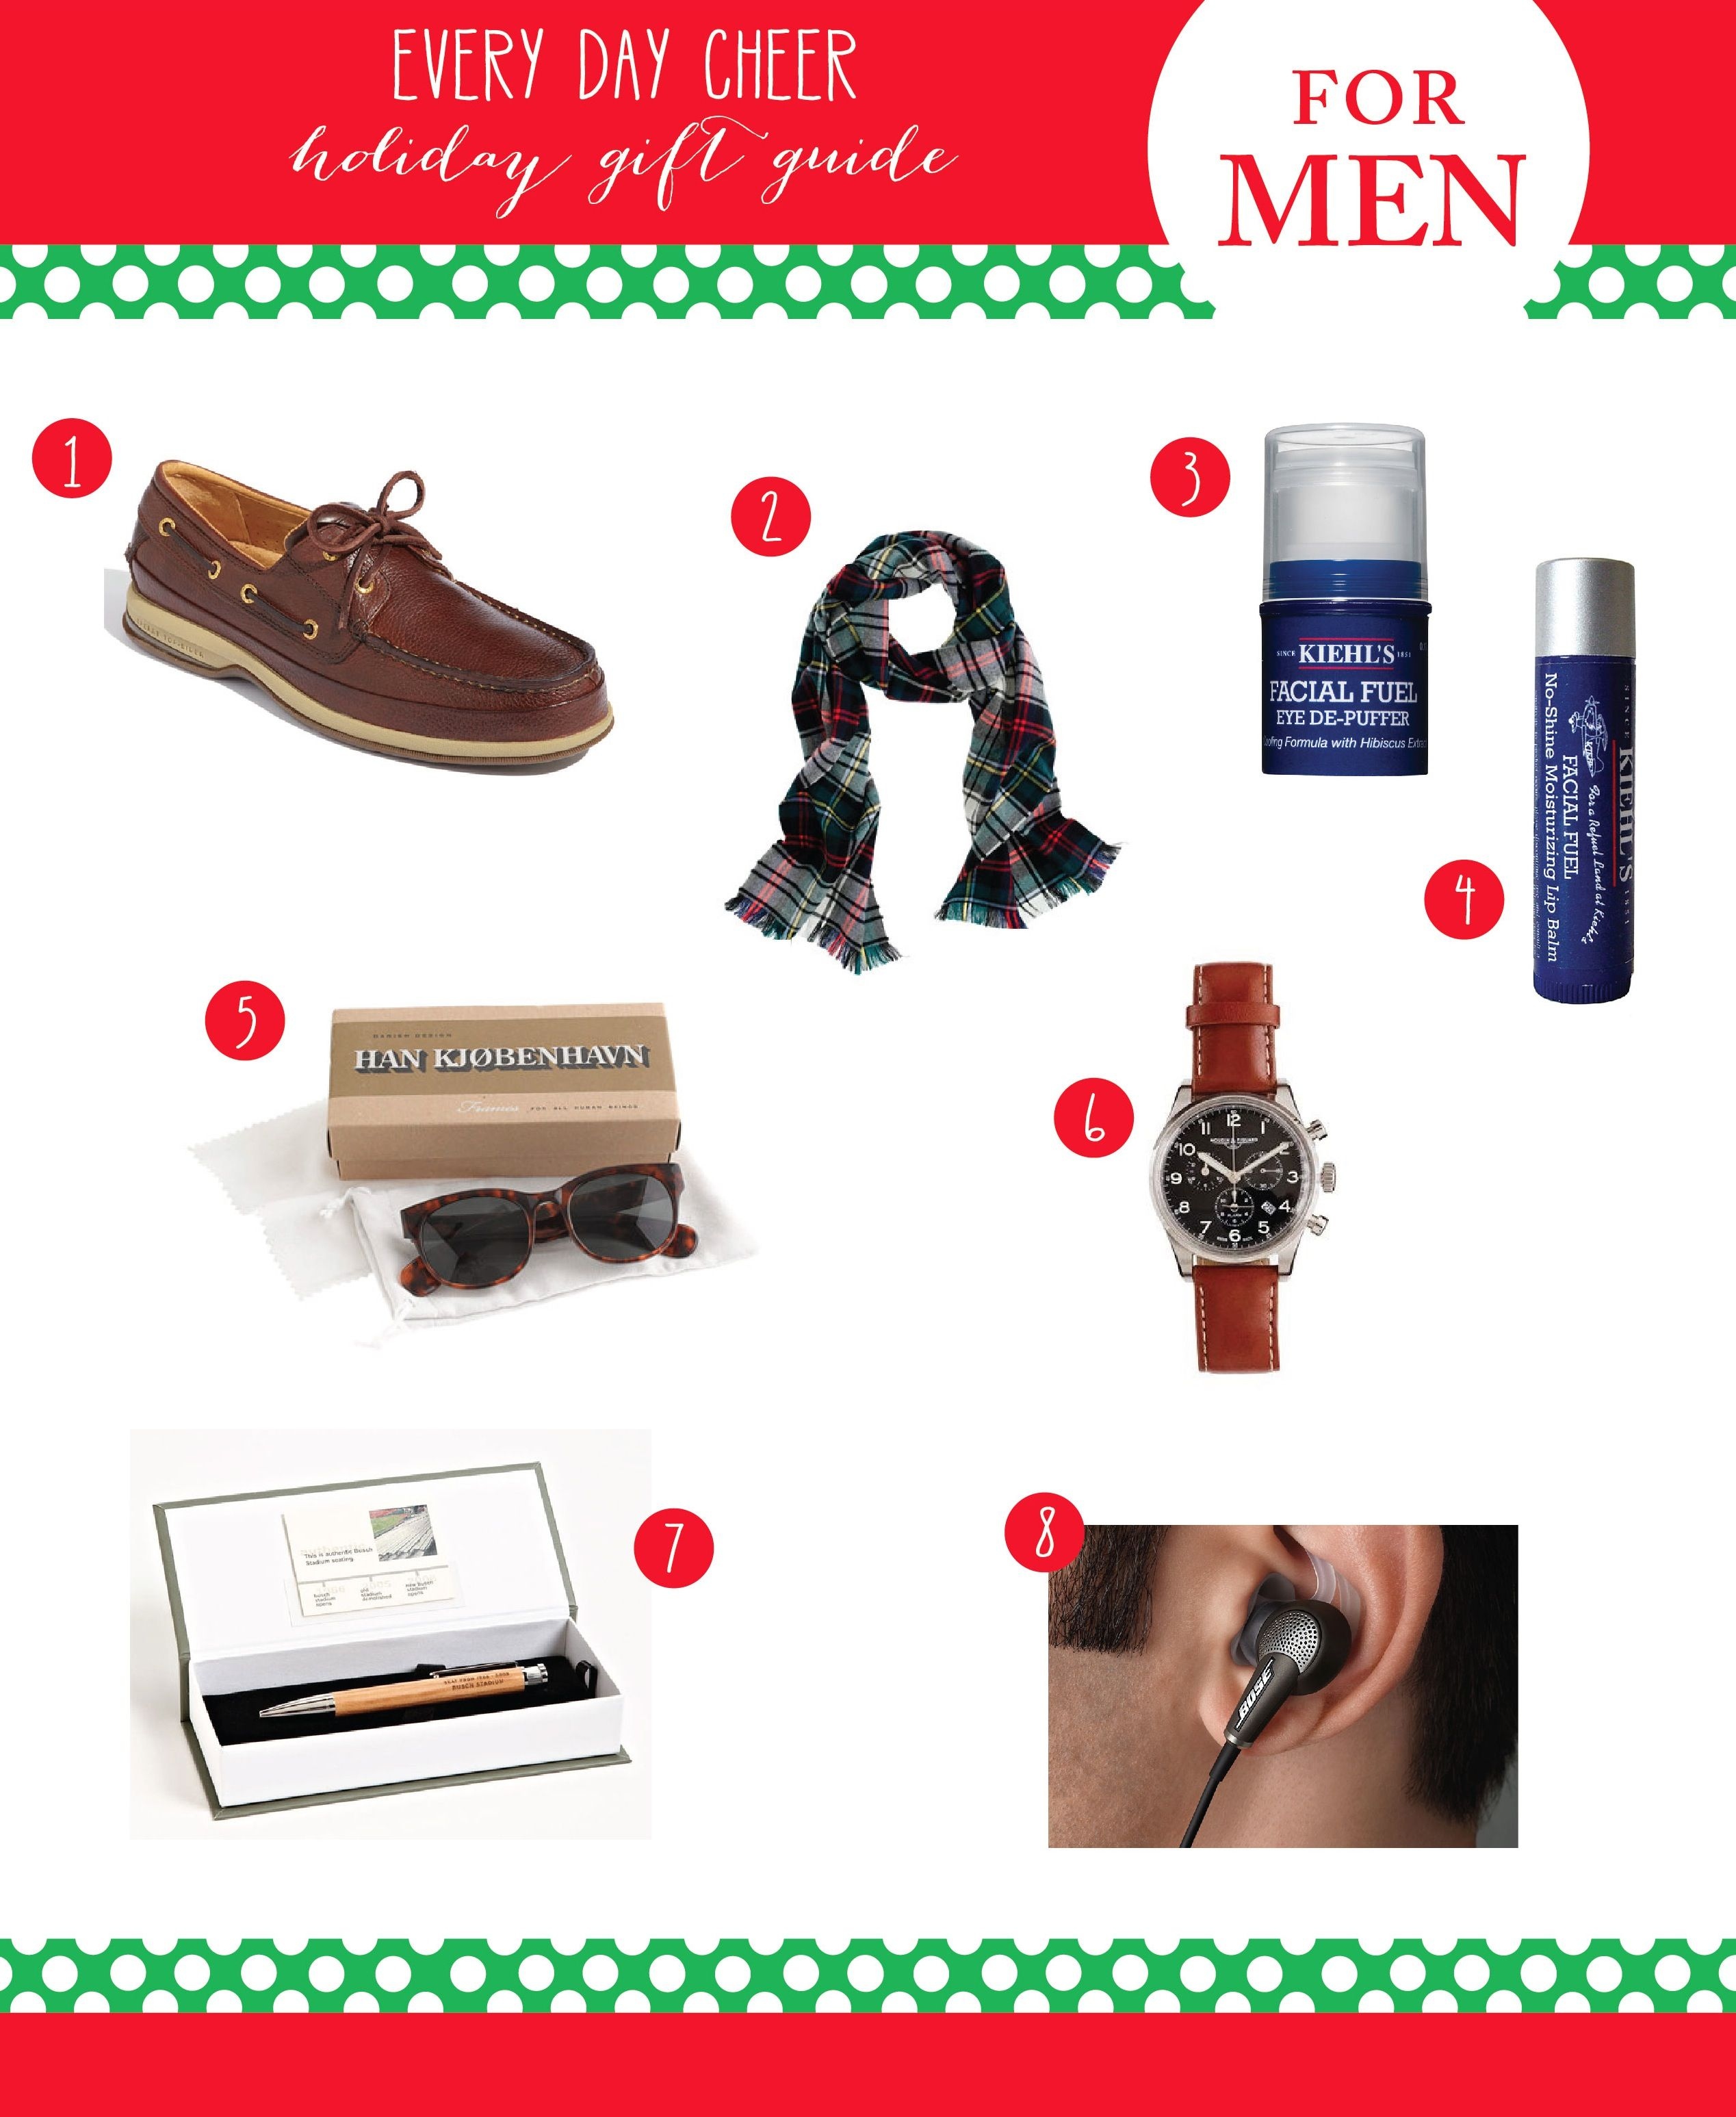 Christmas Ideas For Men.Gift Ideas For Men Gifts Giftideas Holidaygifts